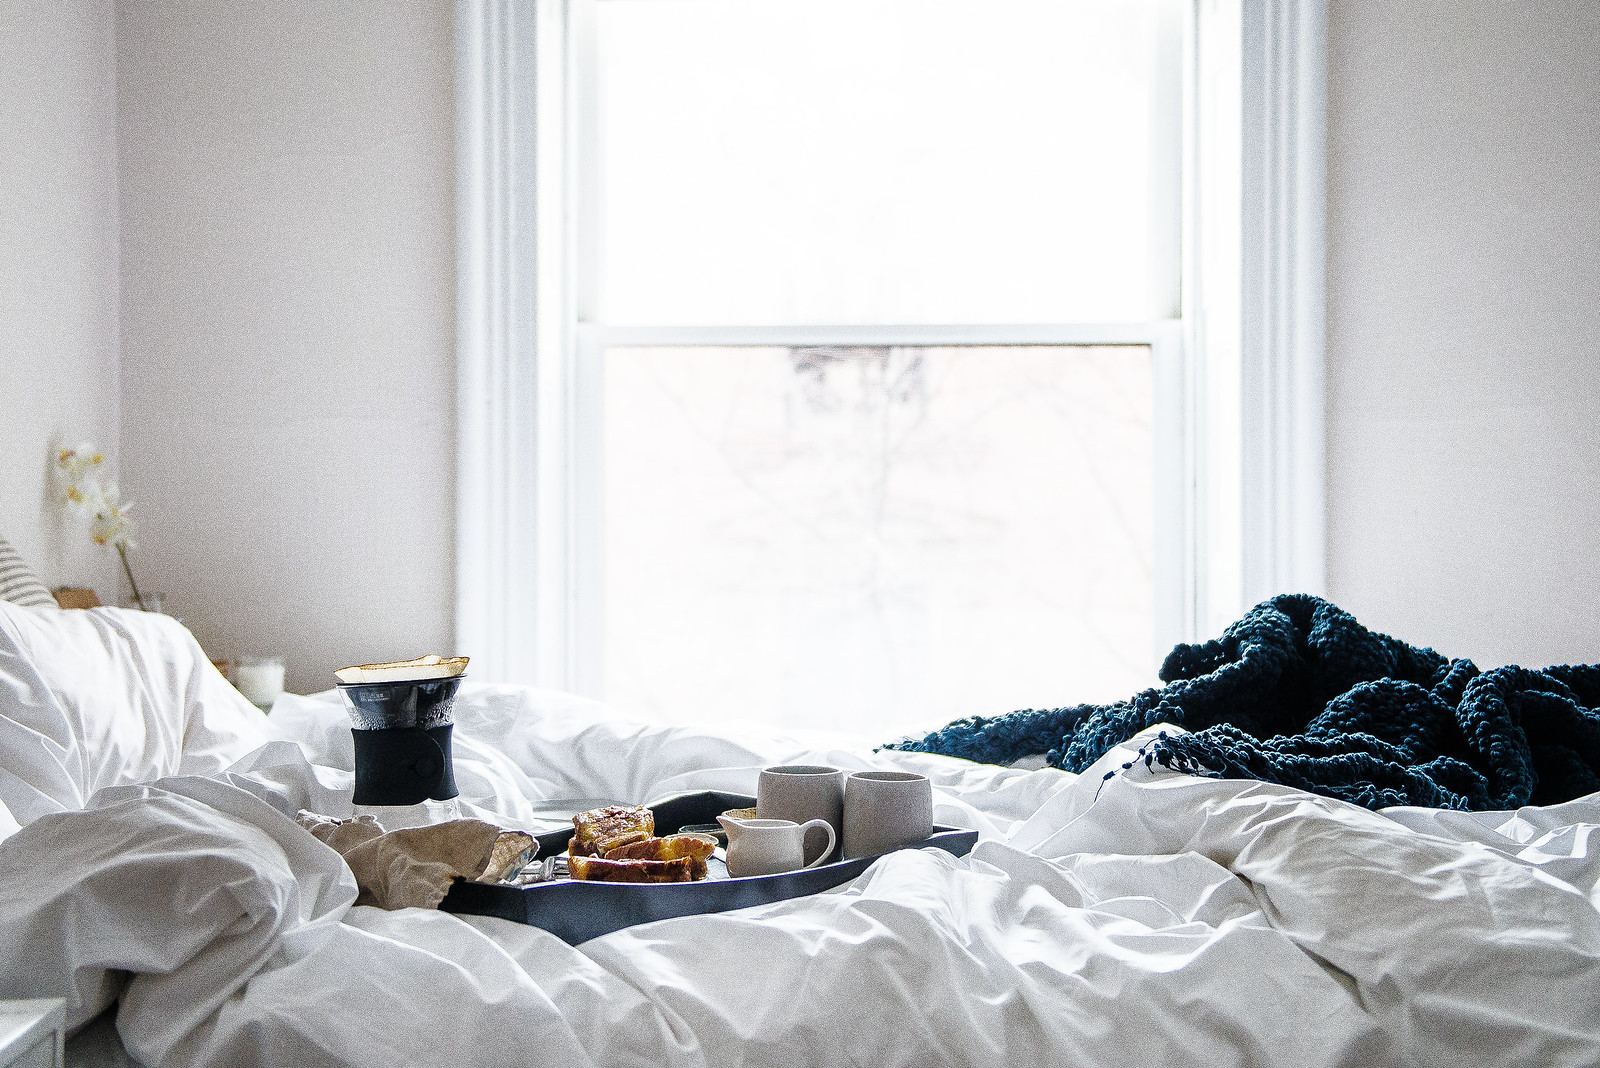 breakfast in bed // savory stuffed french toast